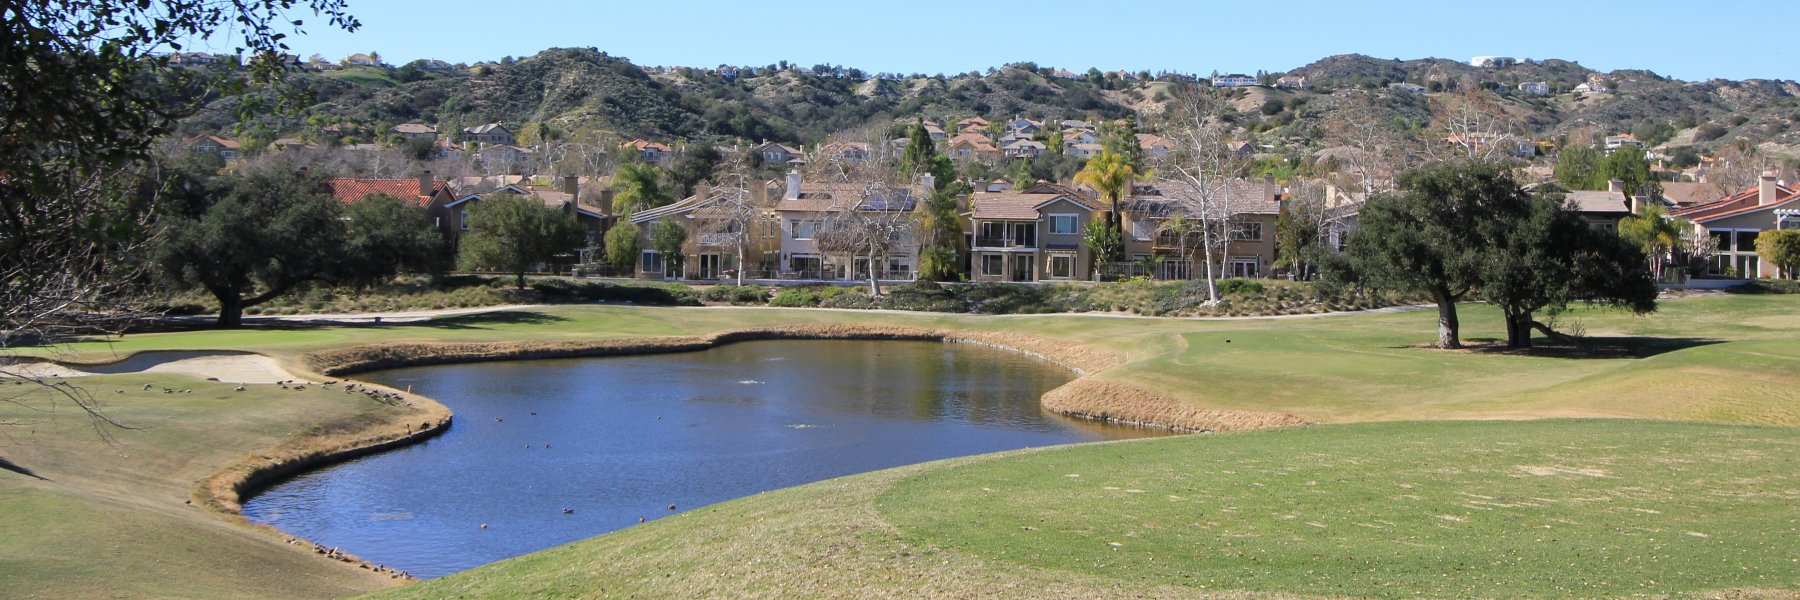 Tanglewood is a community of homes in Coto de Caza, California